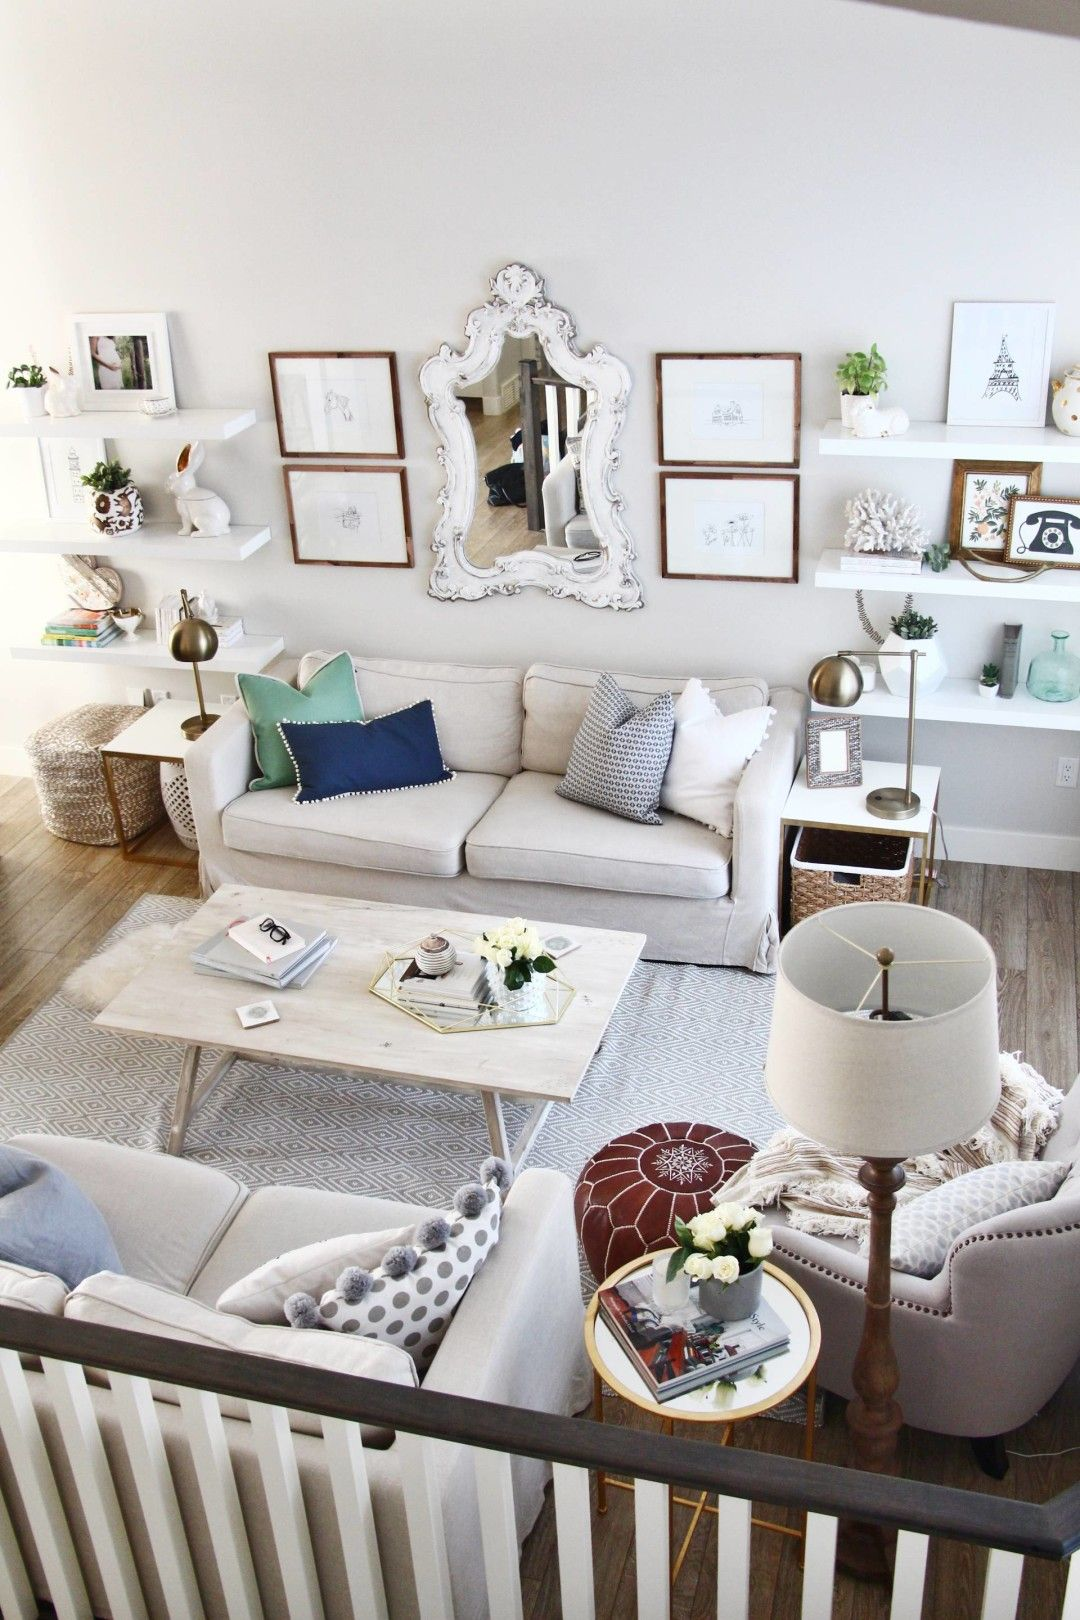 Pin by Jandi Jones on Living in Southern Comfort | Pinterest | Room